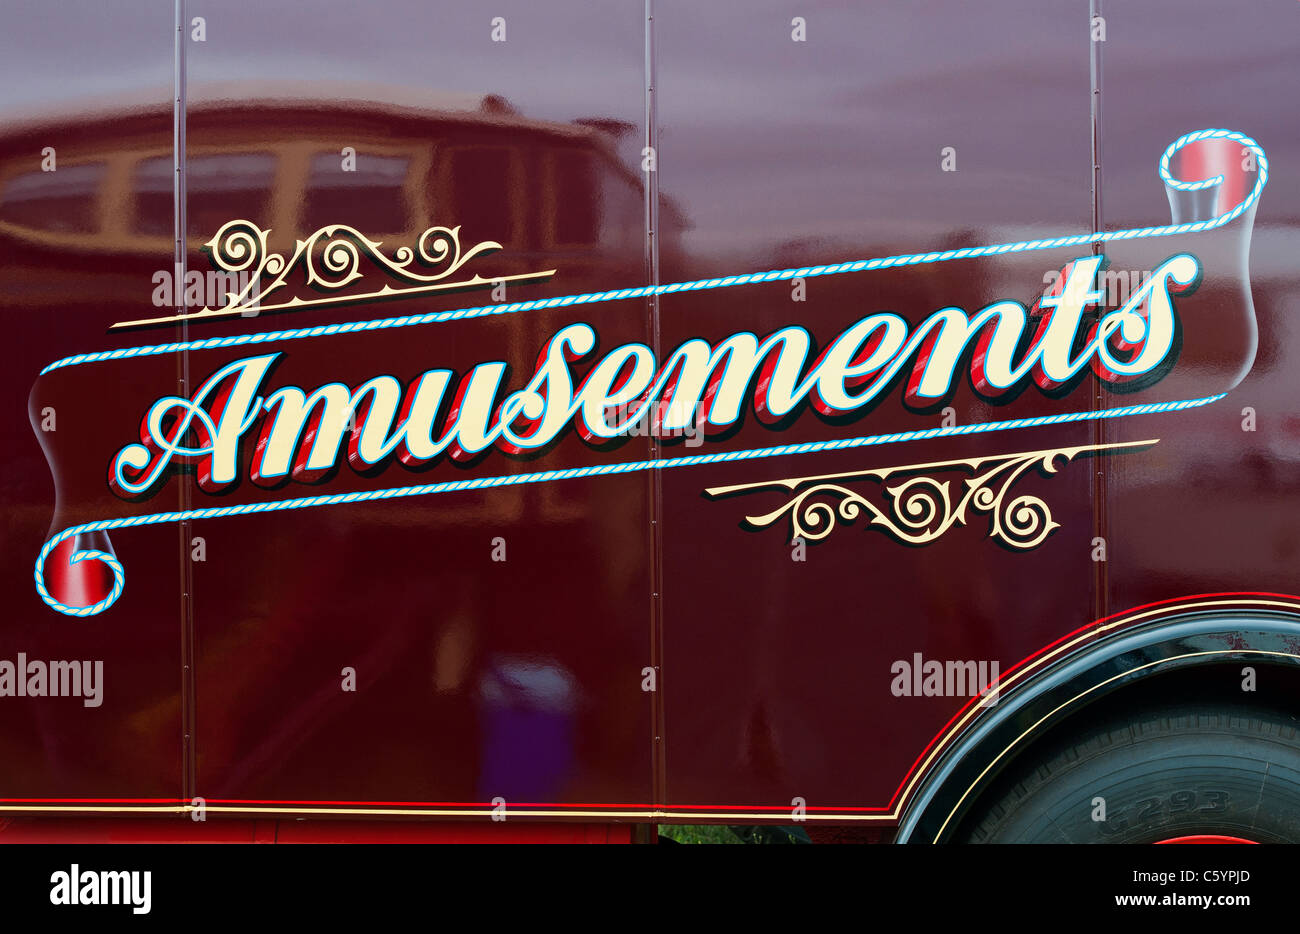 Amusements sign on Scammell highwayman - Stock Image